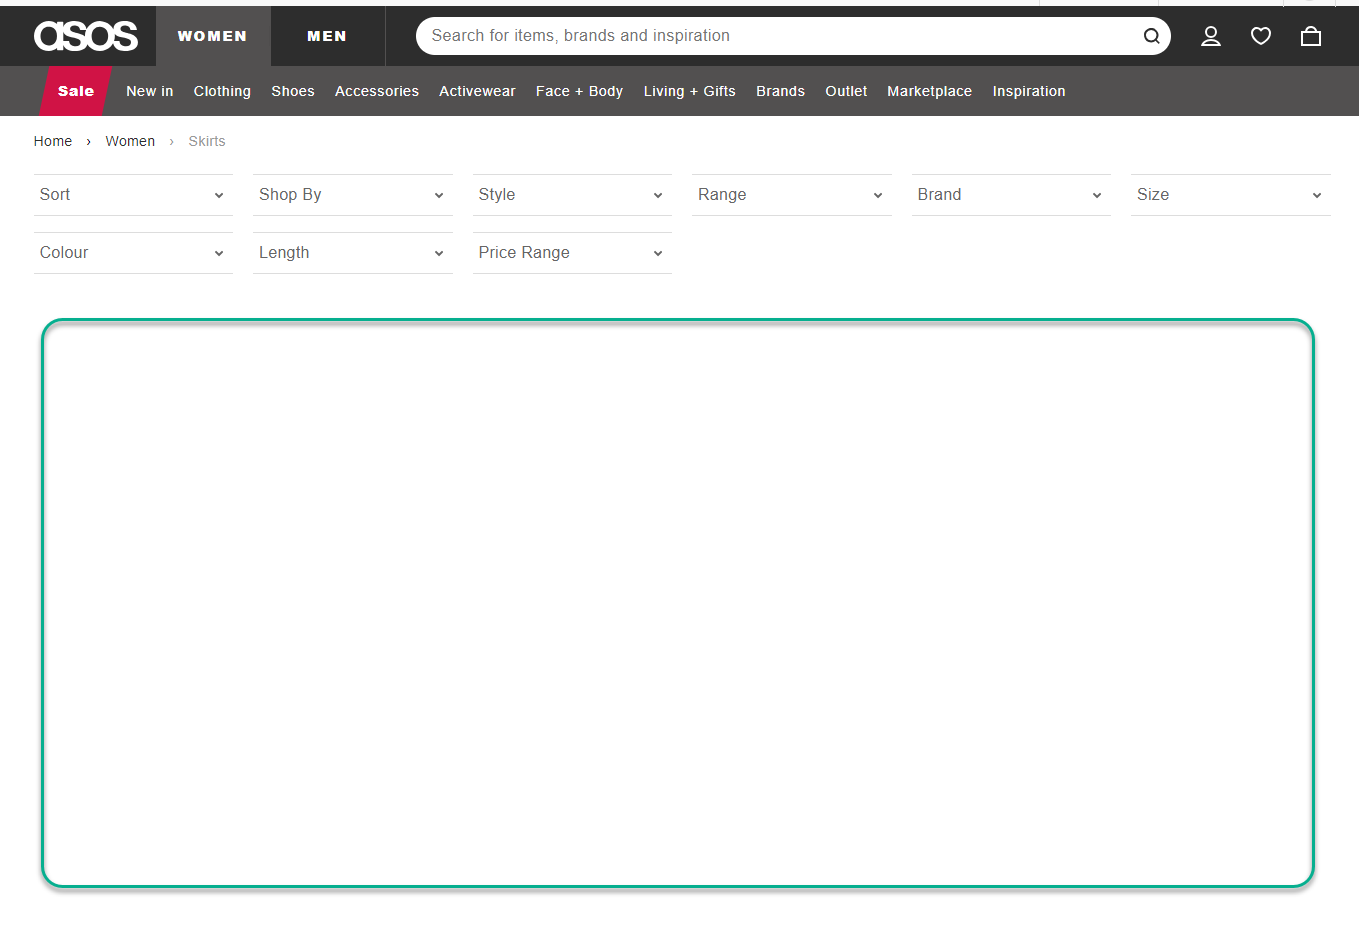 A screenshot of the empty cached space on the ASOS site